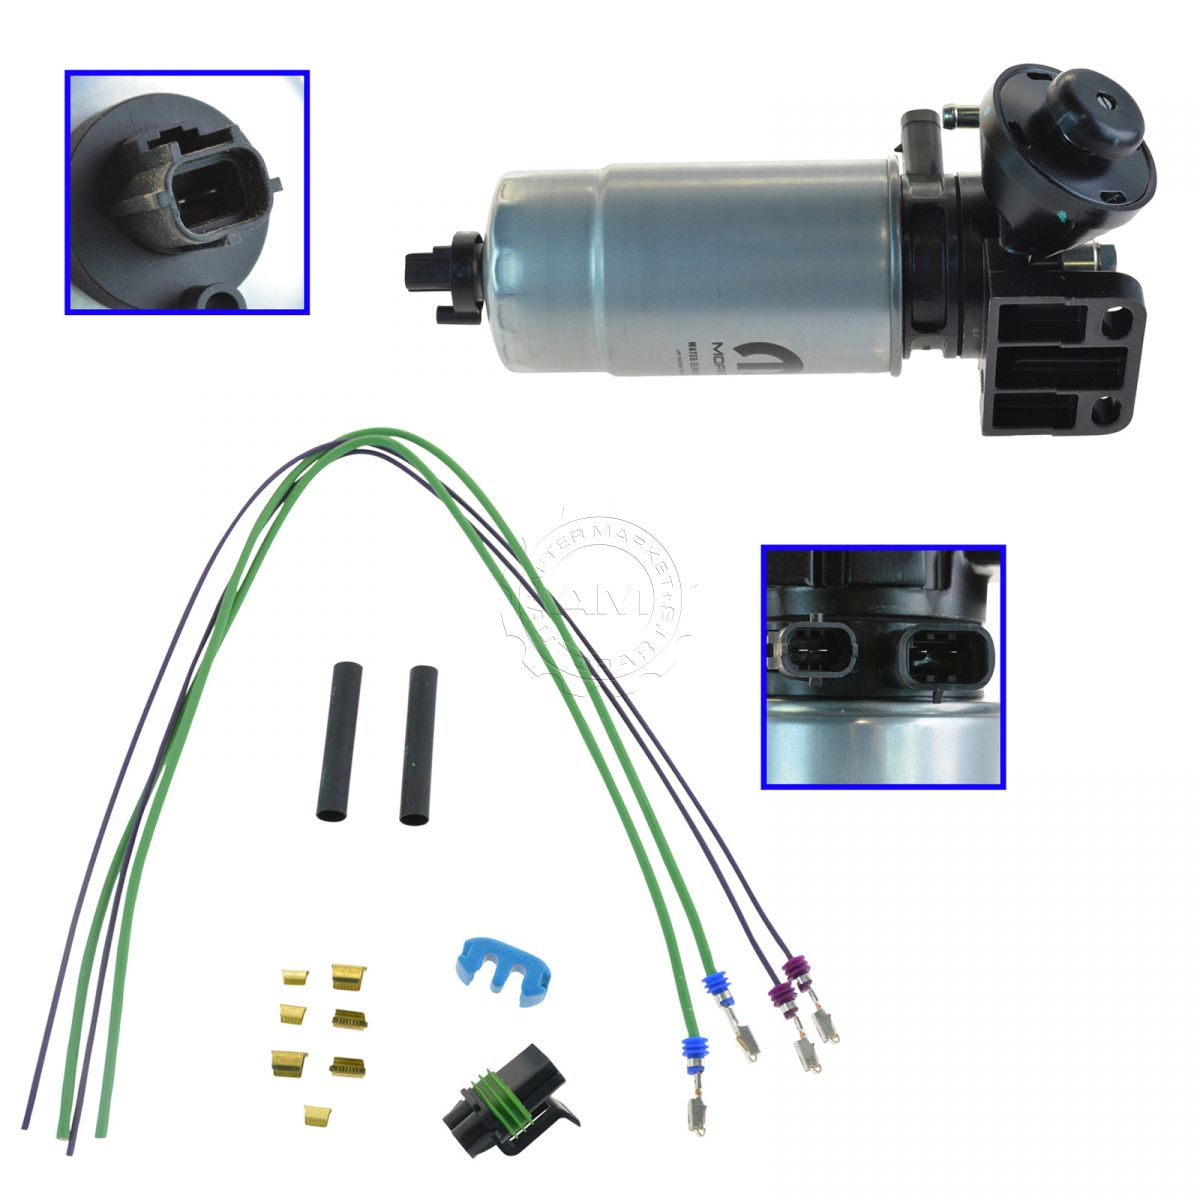 Oem Mopar Oil Filter Water Separator With Wire Harness Kit For Jeep Liberty 2 8l